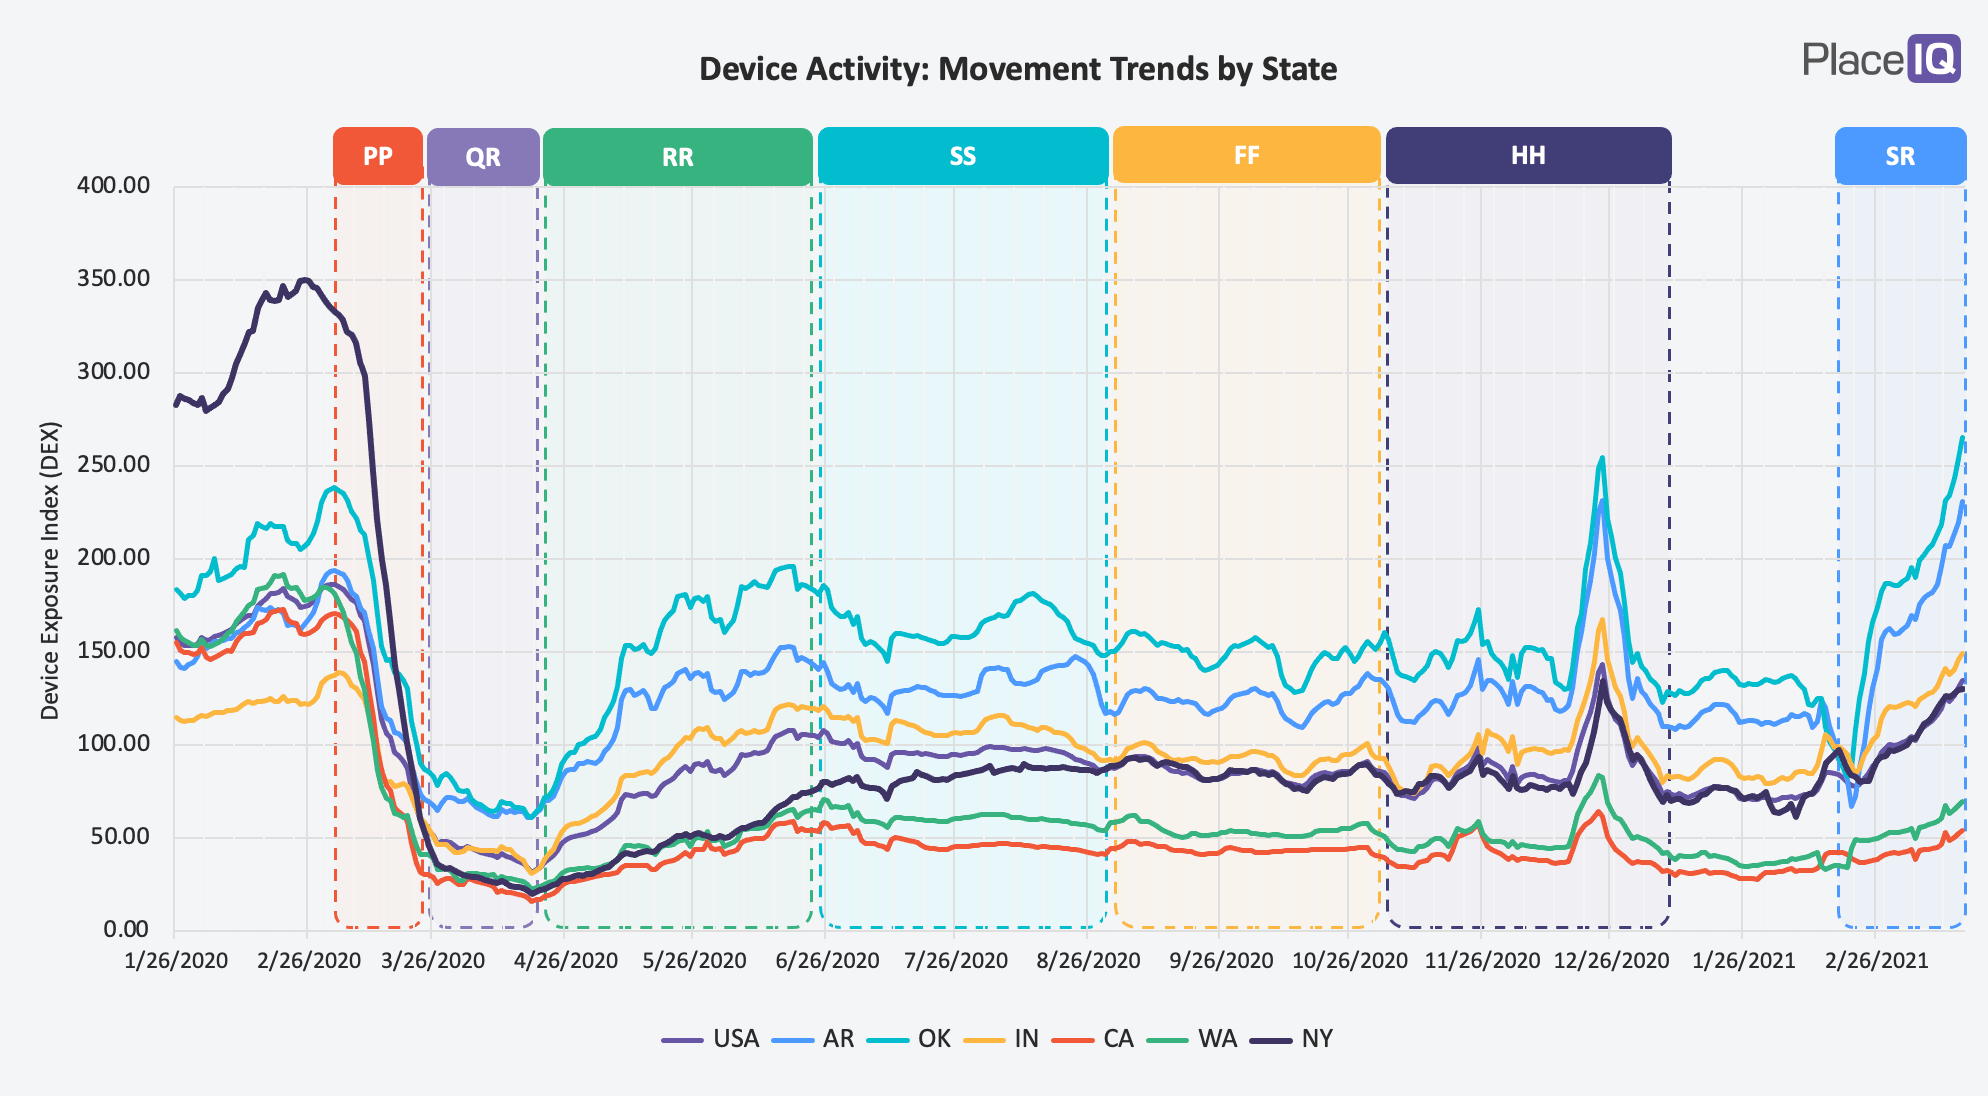 CHART: Device Activity: Movement Trends by State